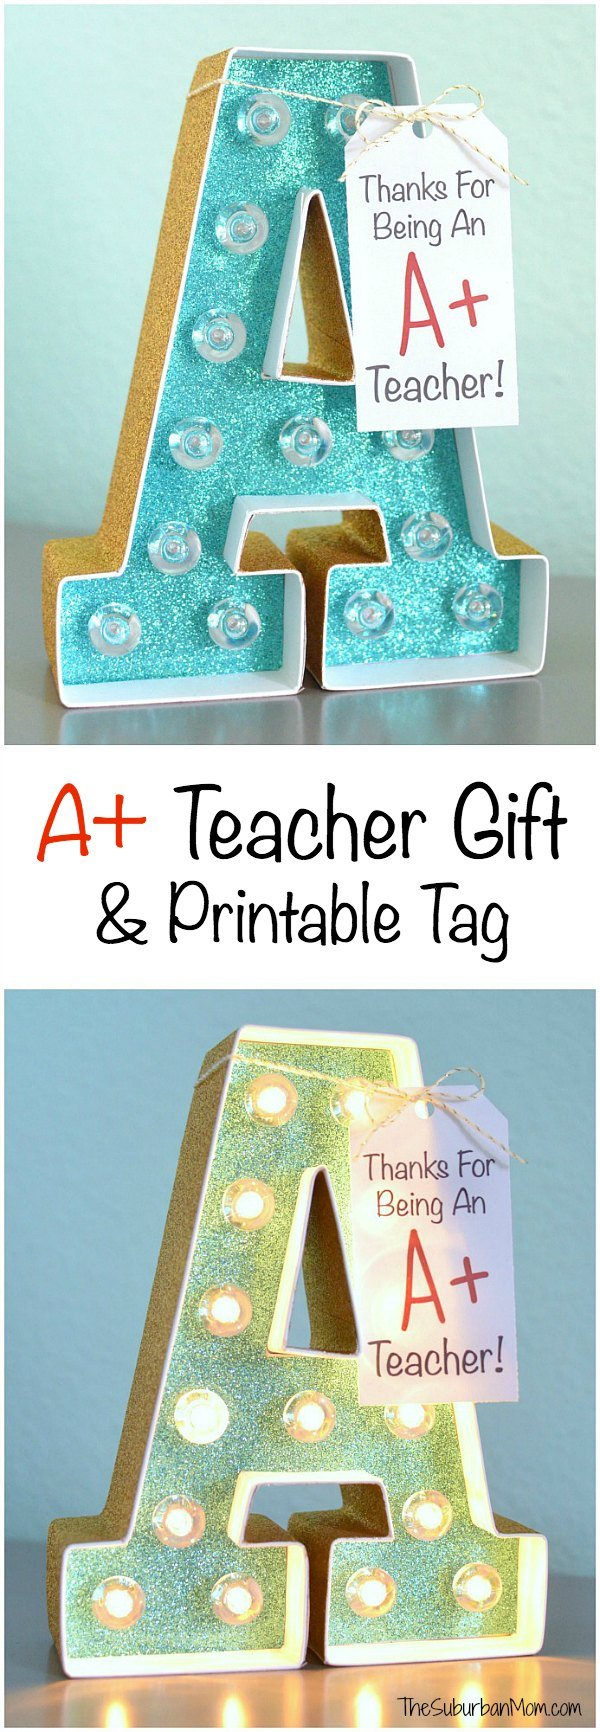 A+ Teacher Gift and Printable Tag